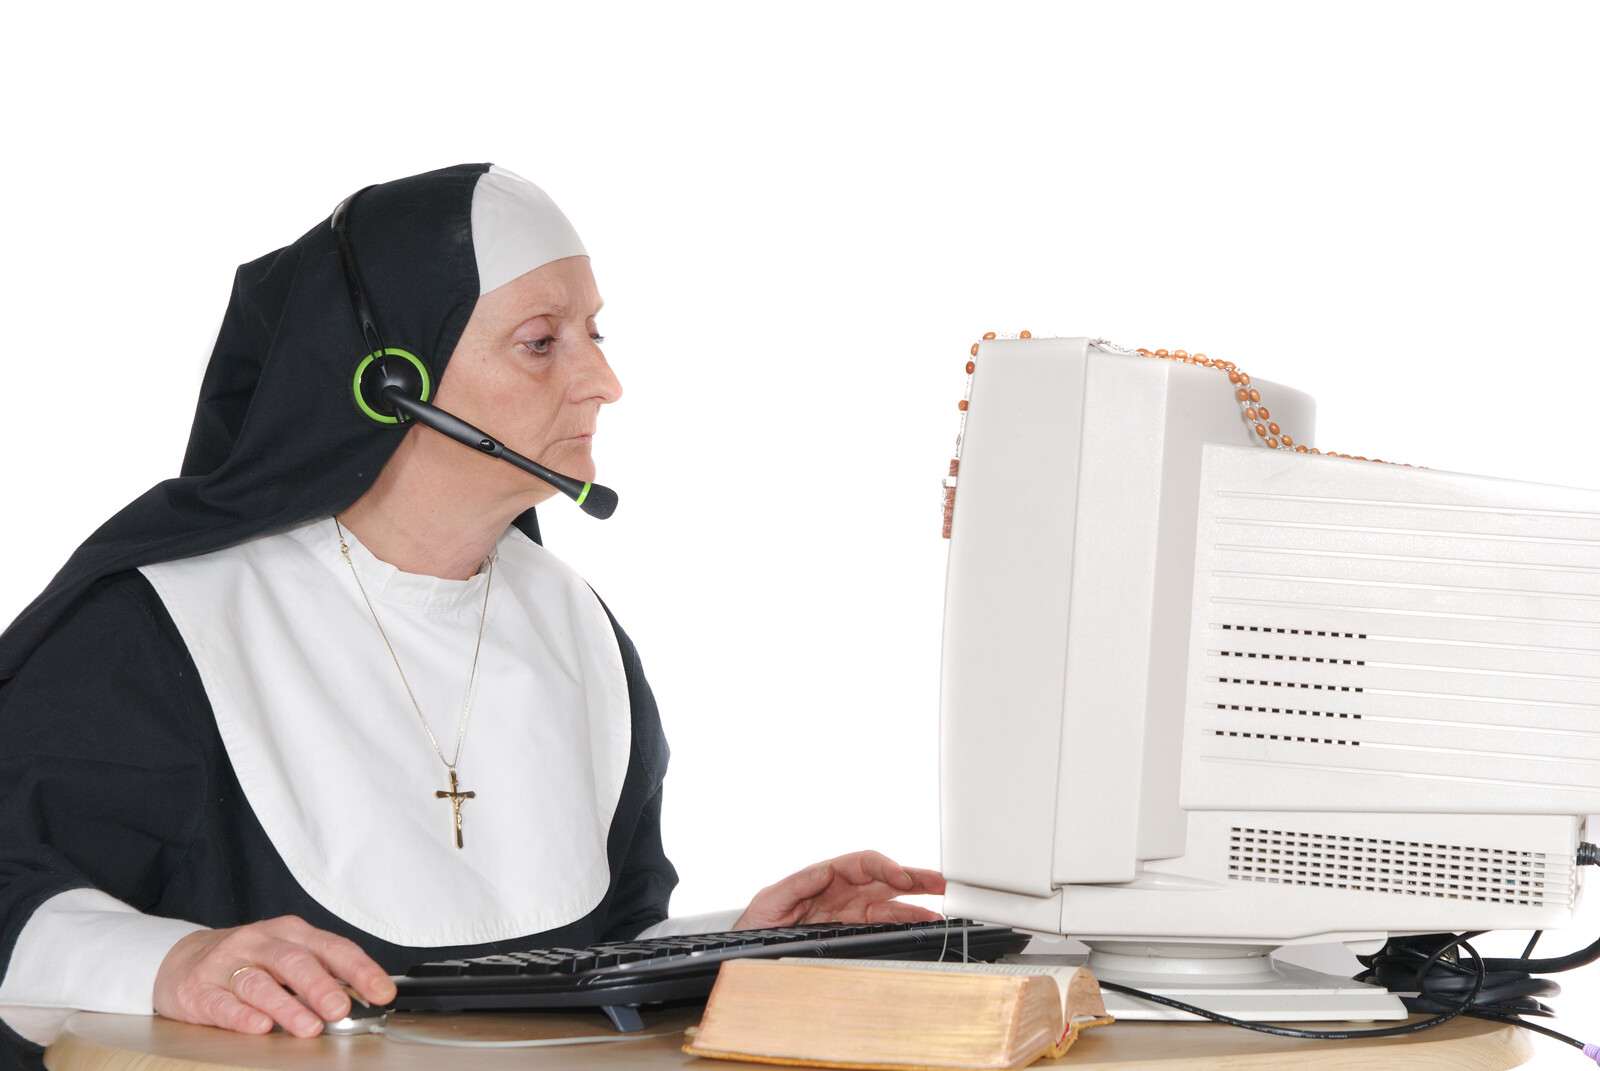 Middle aged nun on computer wearing a headset - represents the church ordering equipment